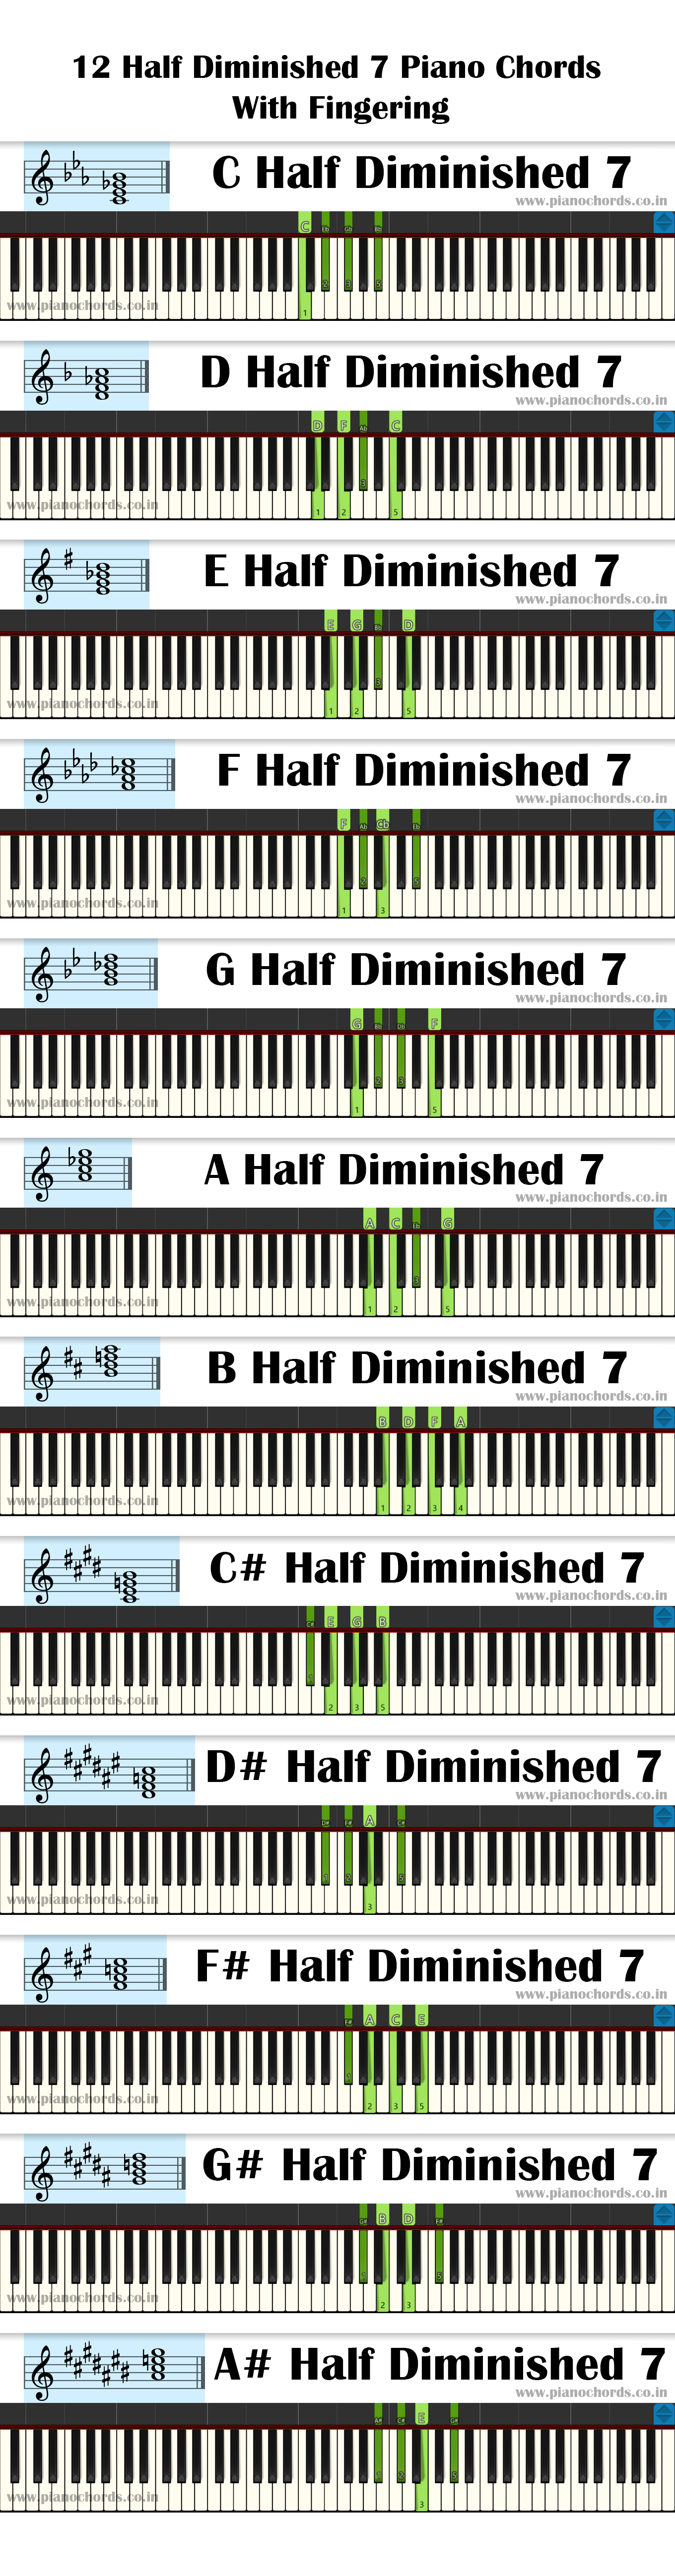 12 Half Diminished 7 Piano Chords With Fingering - Diagram - Staff Notation